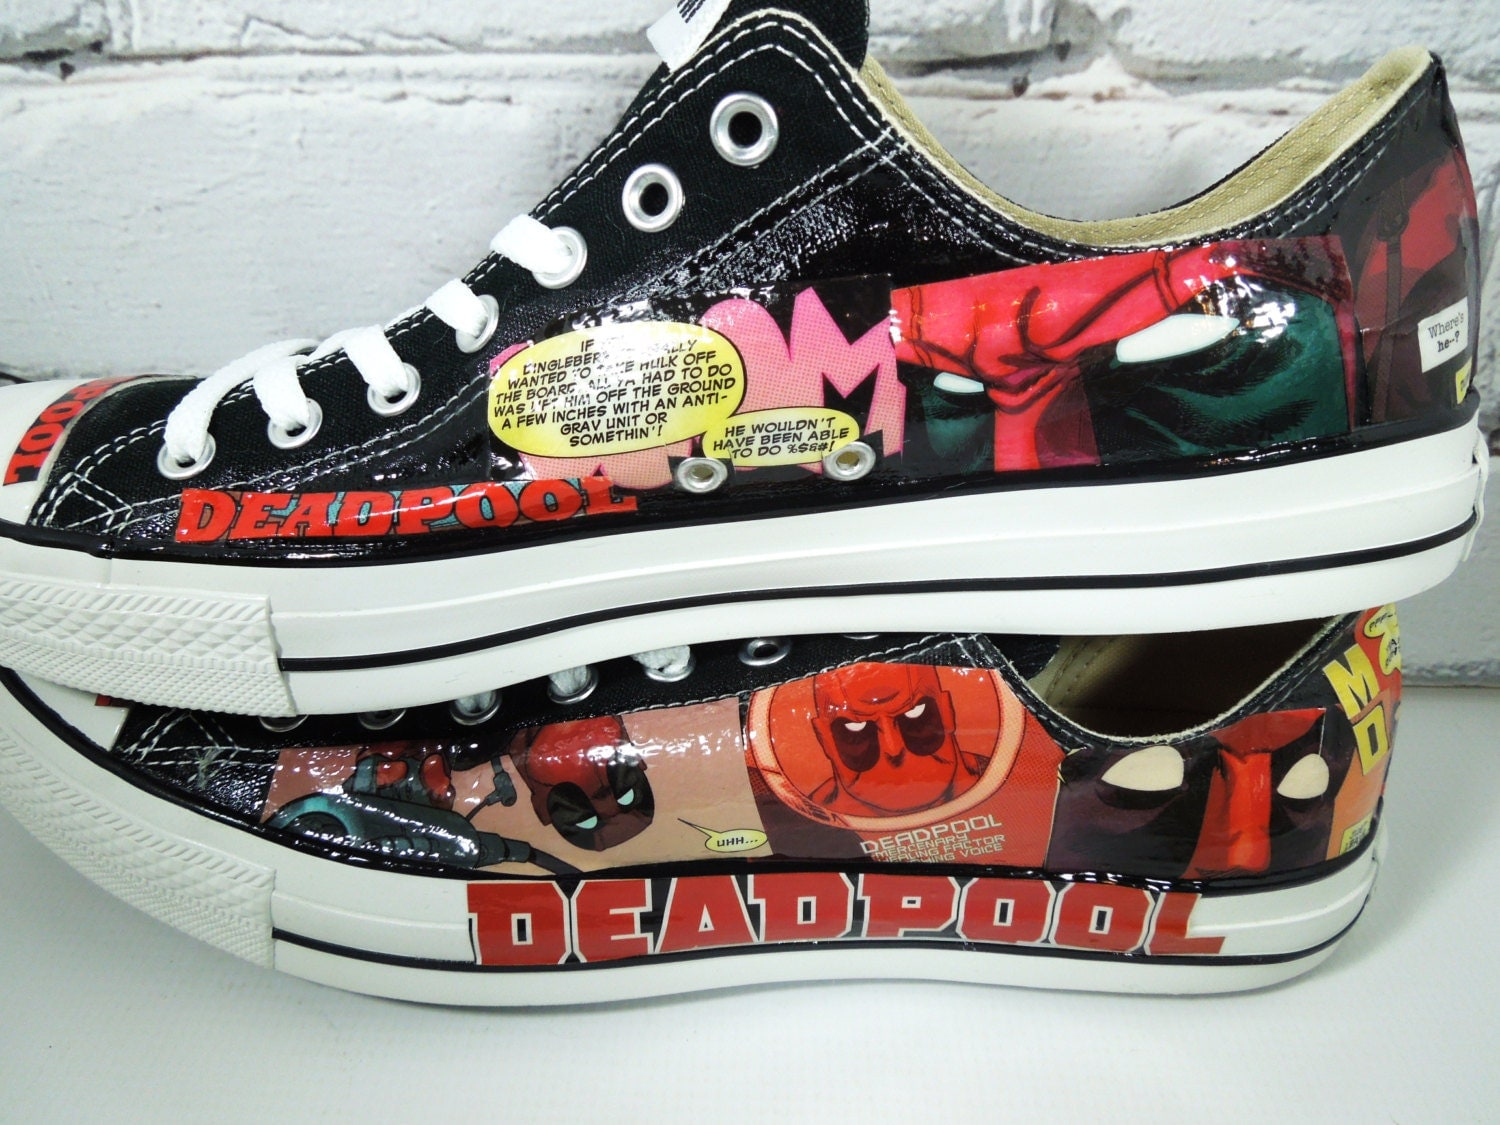 Men's Deadpool Comic Book Custom Sneakers. The Merc with a Mouth